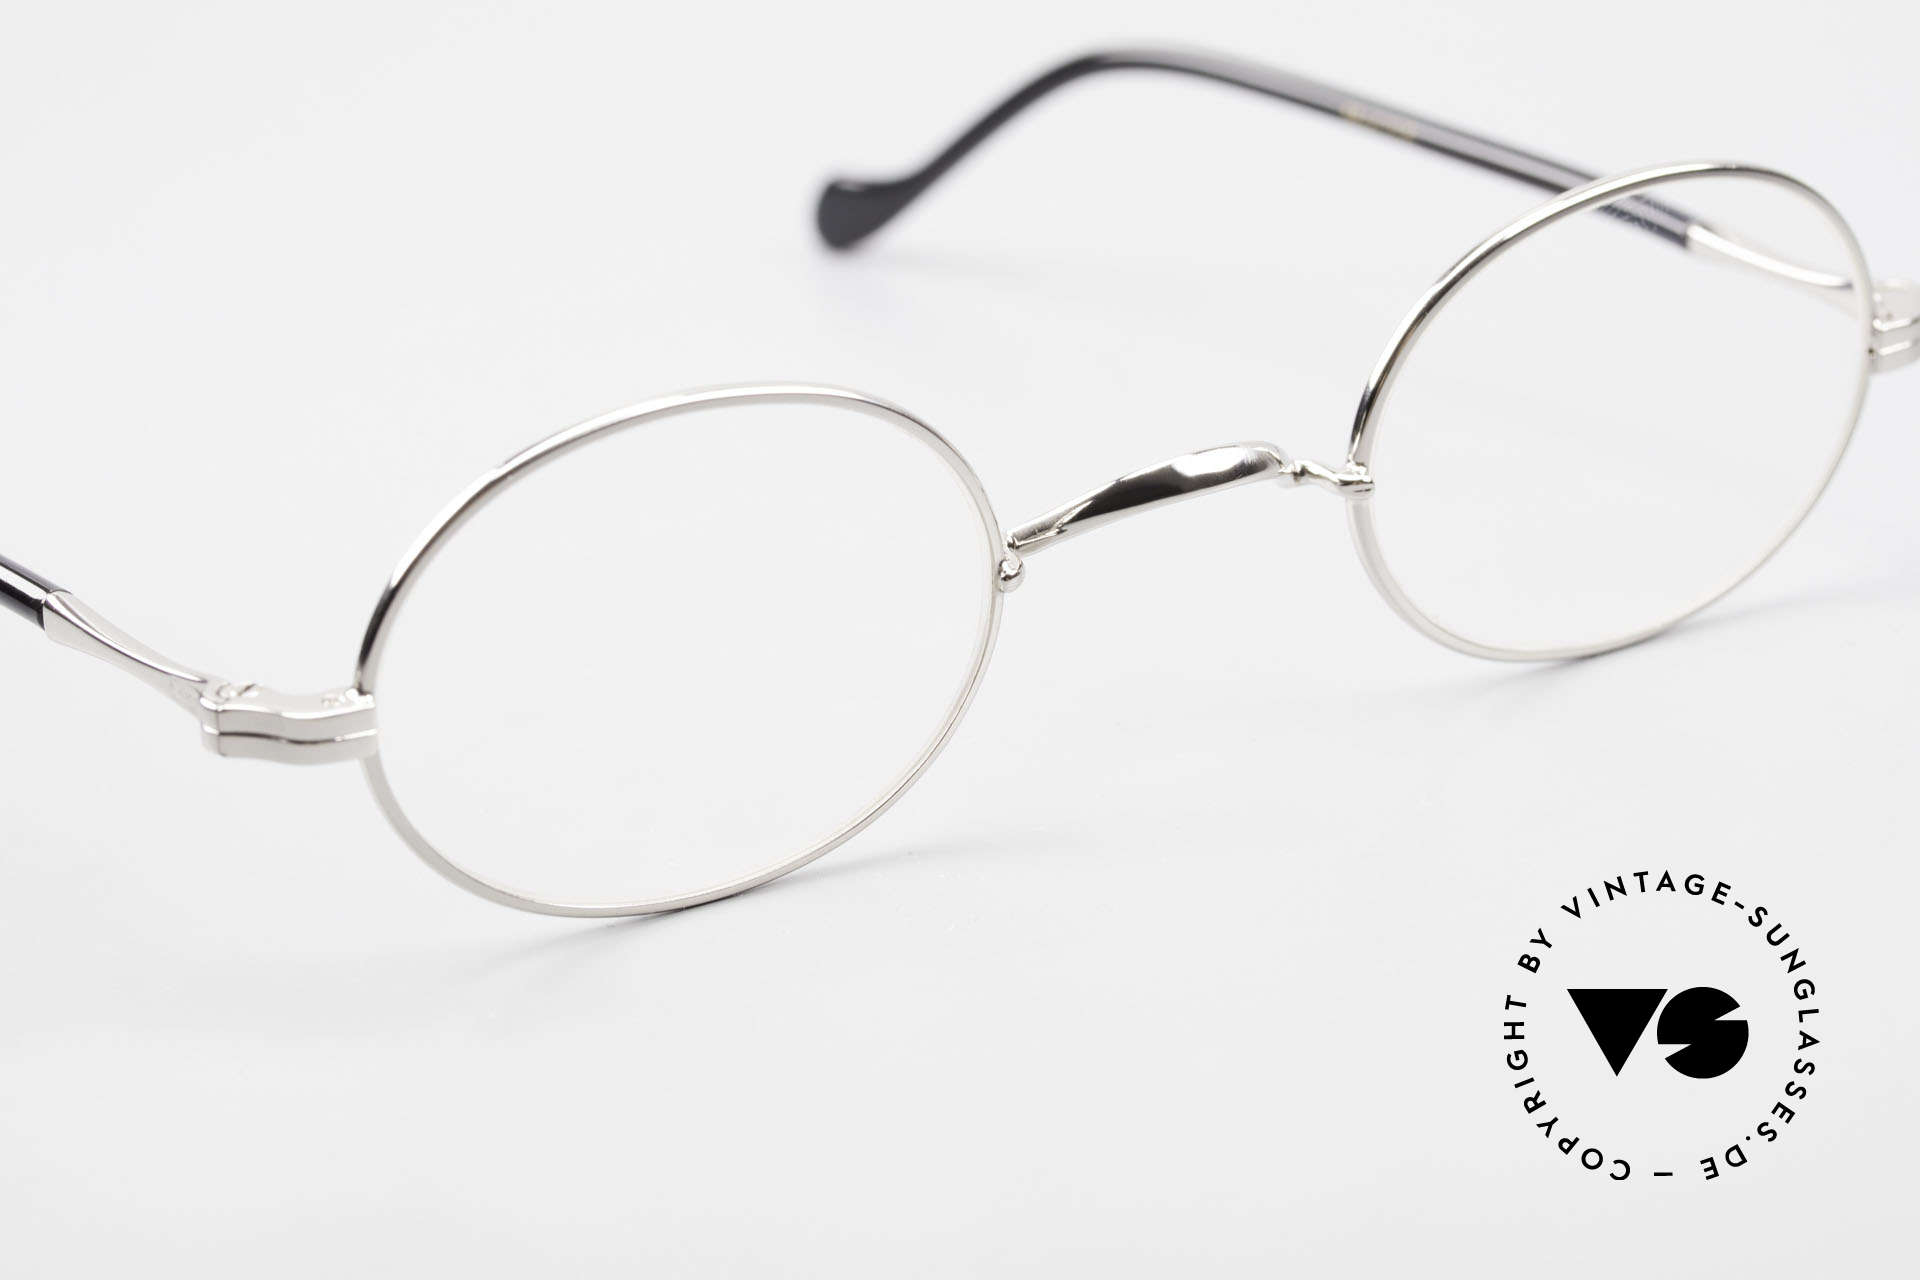 Lunor II A 10 Oval Vintage Frame Platinum, unworn RARITY (for all lovers of quality) from app. 2010, Made for Men and Women